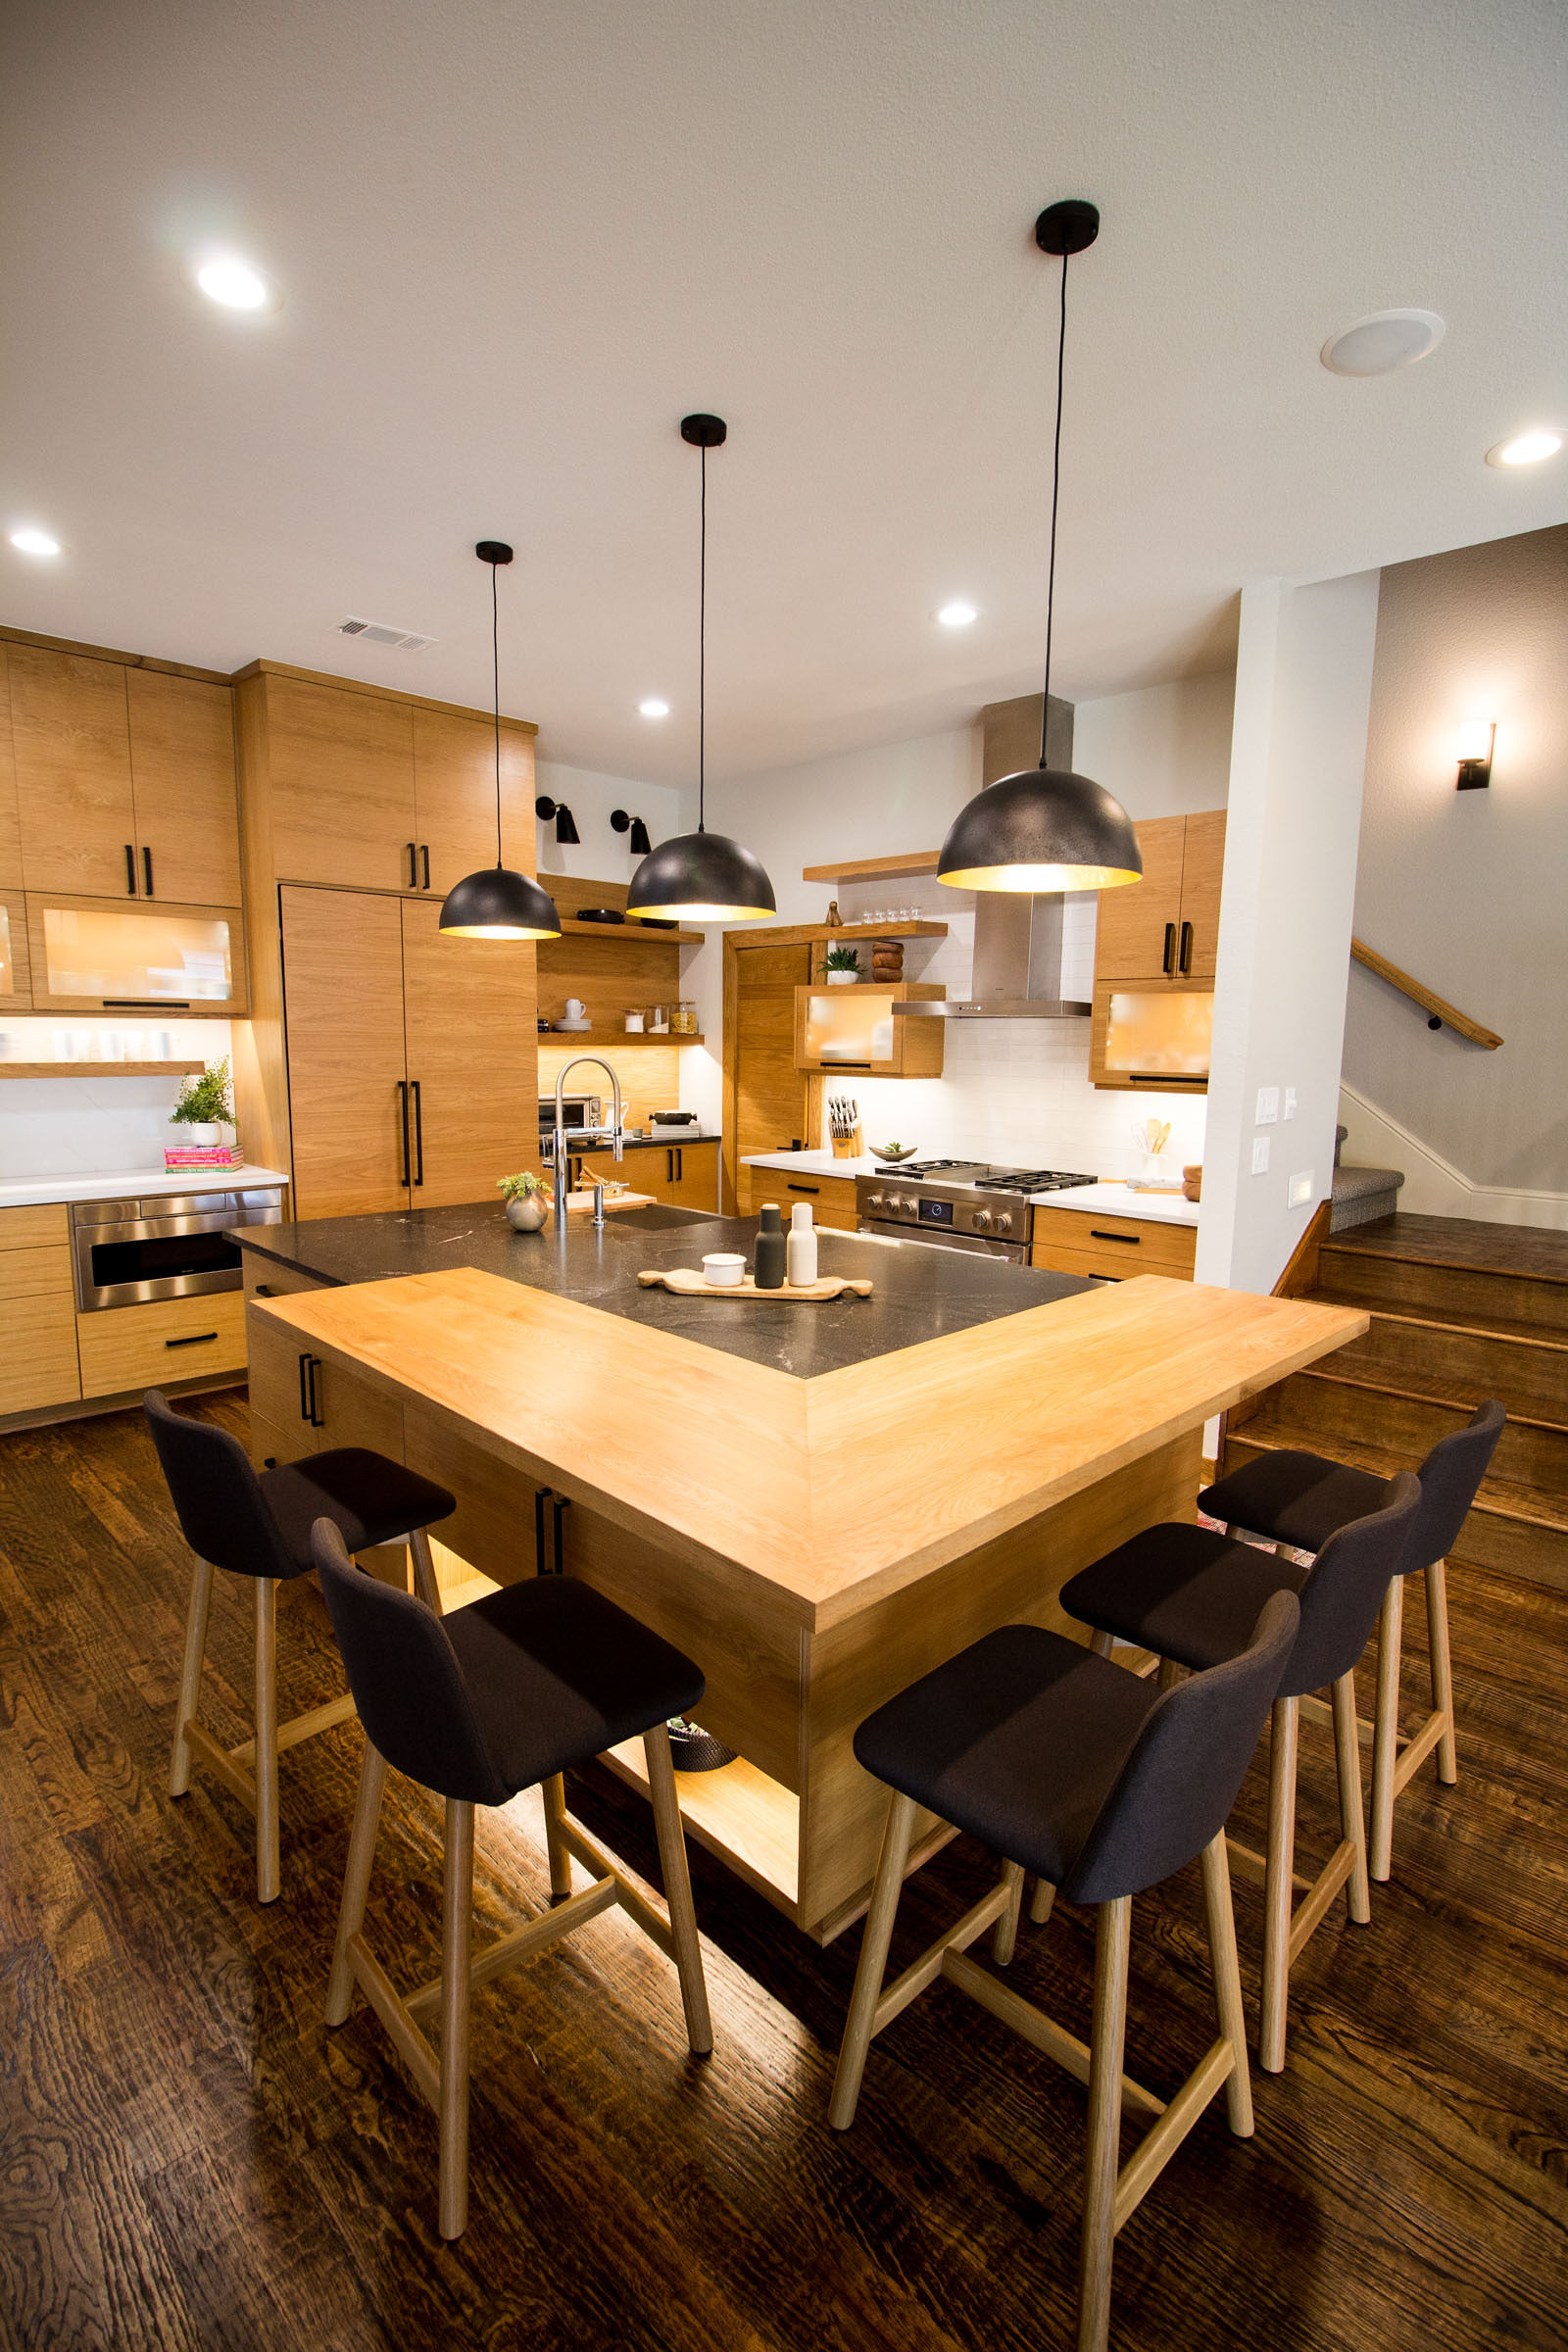 Warm tones, industrial vibe, simple, open floor plan, raw wood, blonde cabinets, hard wood floors, under lighting